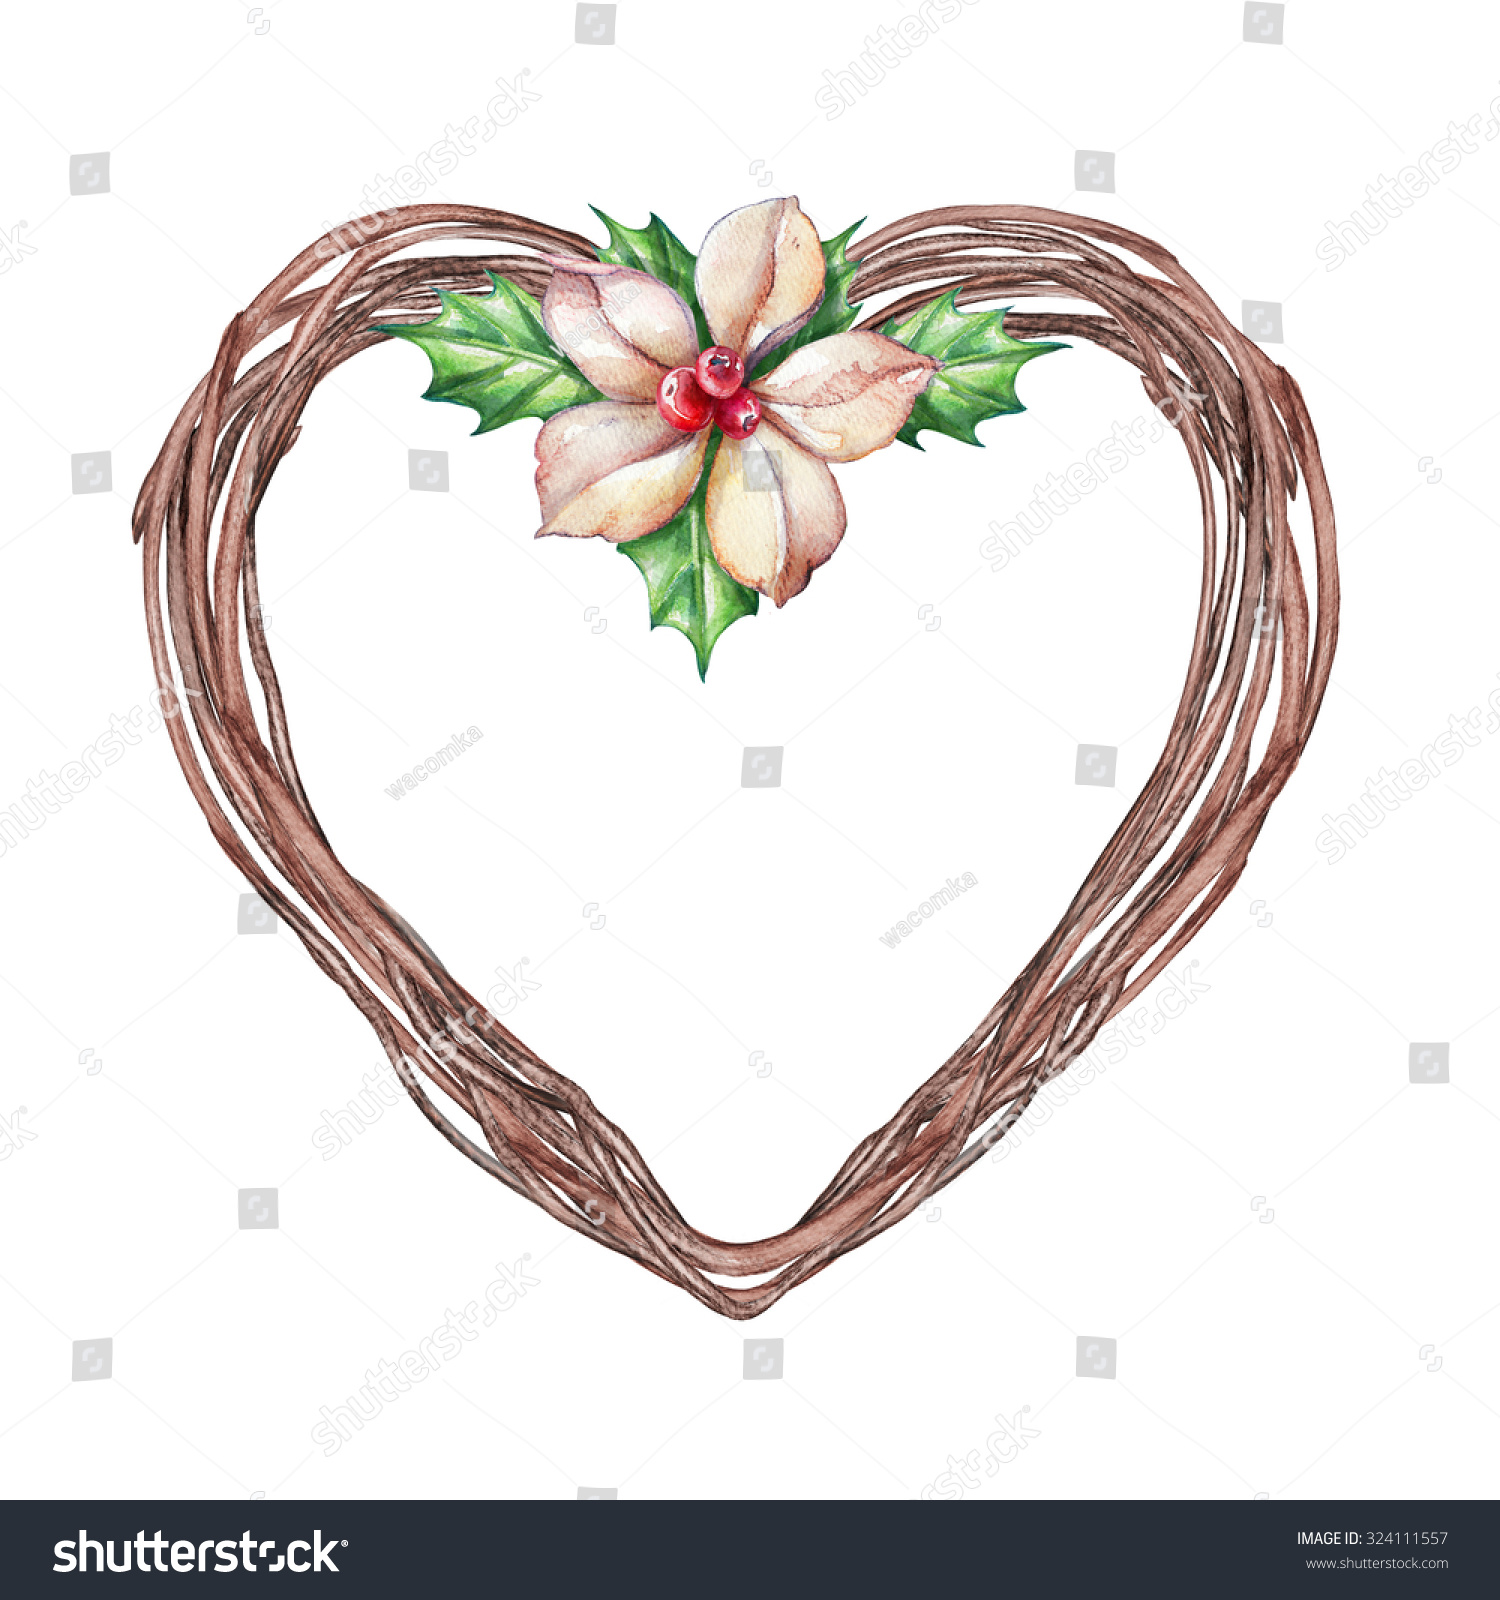 Christmas floral heart wreath round frame stock